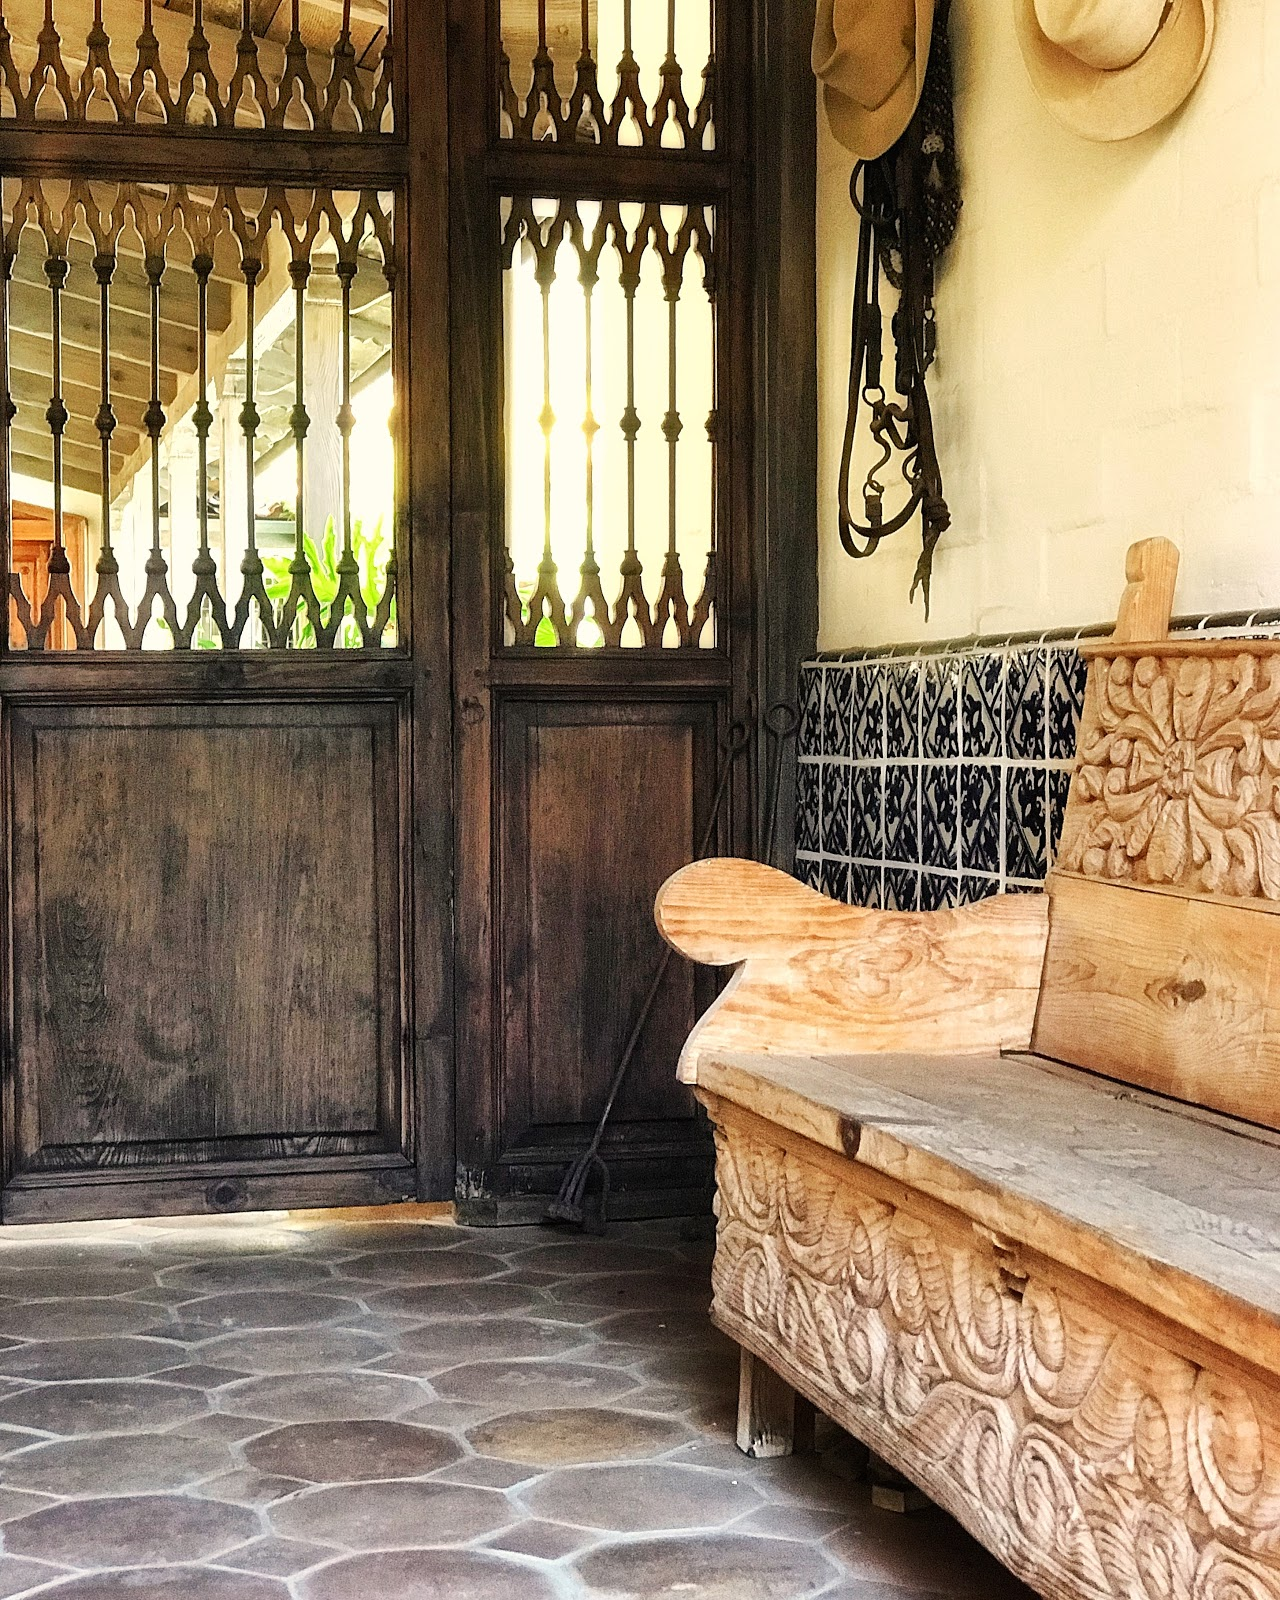 Pierced walnut entry doors that lead to the hacienda's inner courtyard